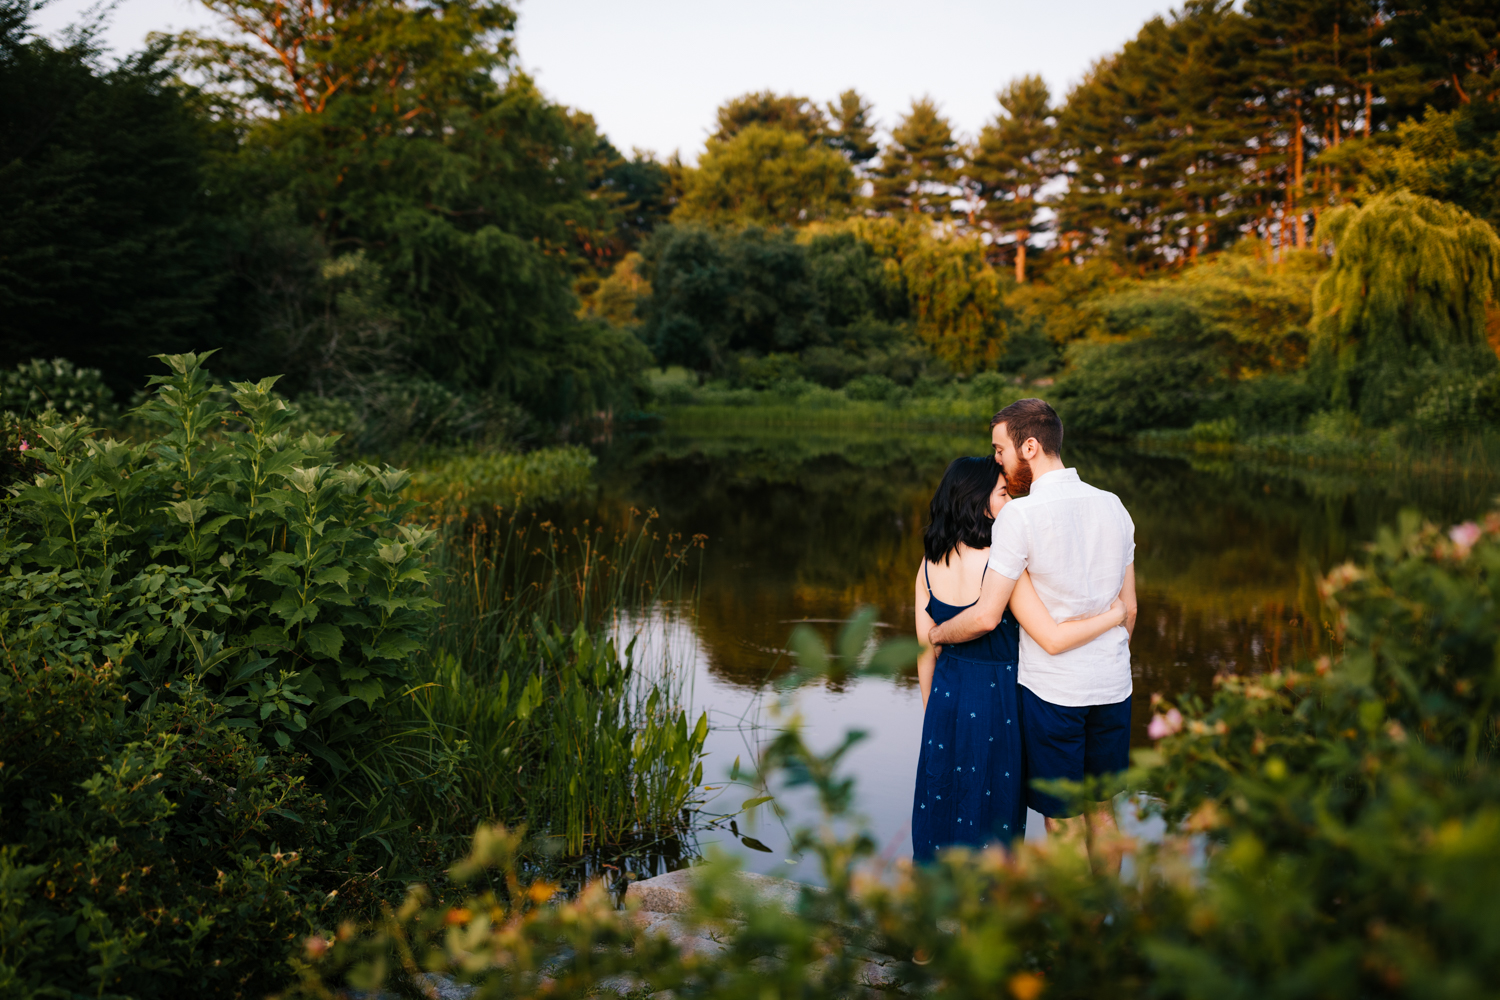 boston-massachusetts-fun-engagement-photographer-arnold-arboretum-andrea-van-orsouw-photography-adventurous-natural-harvard.jpg